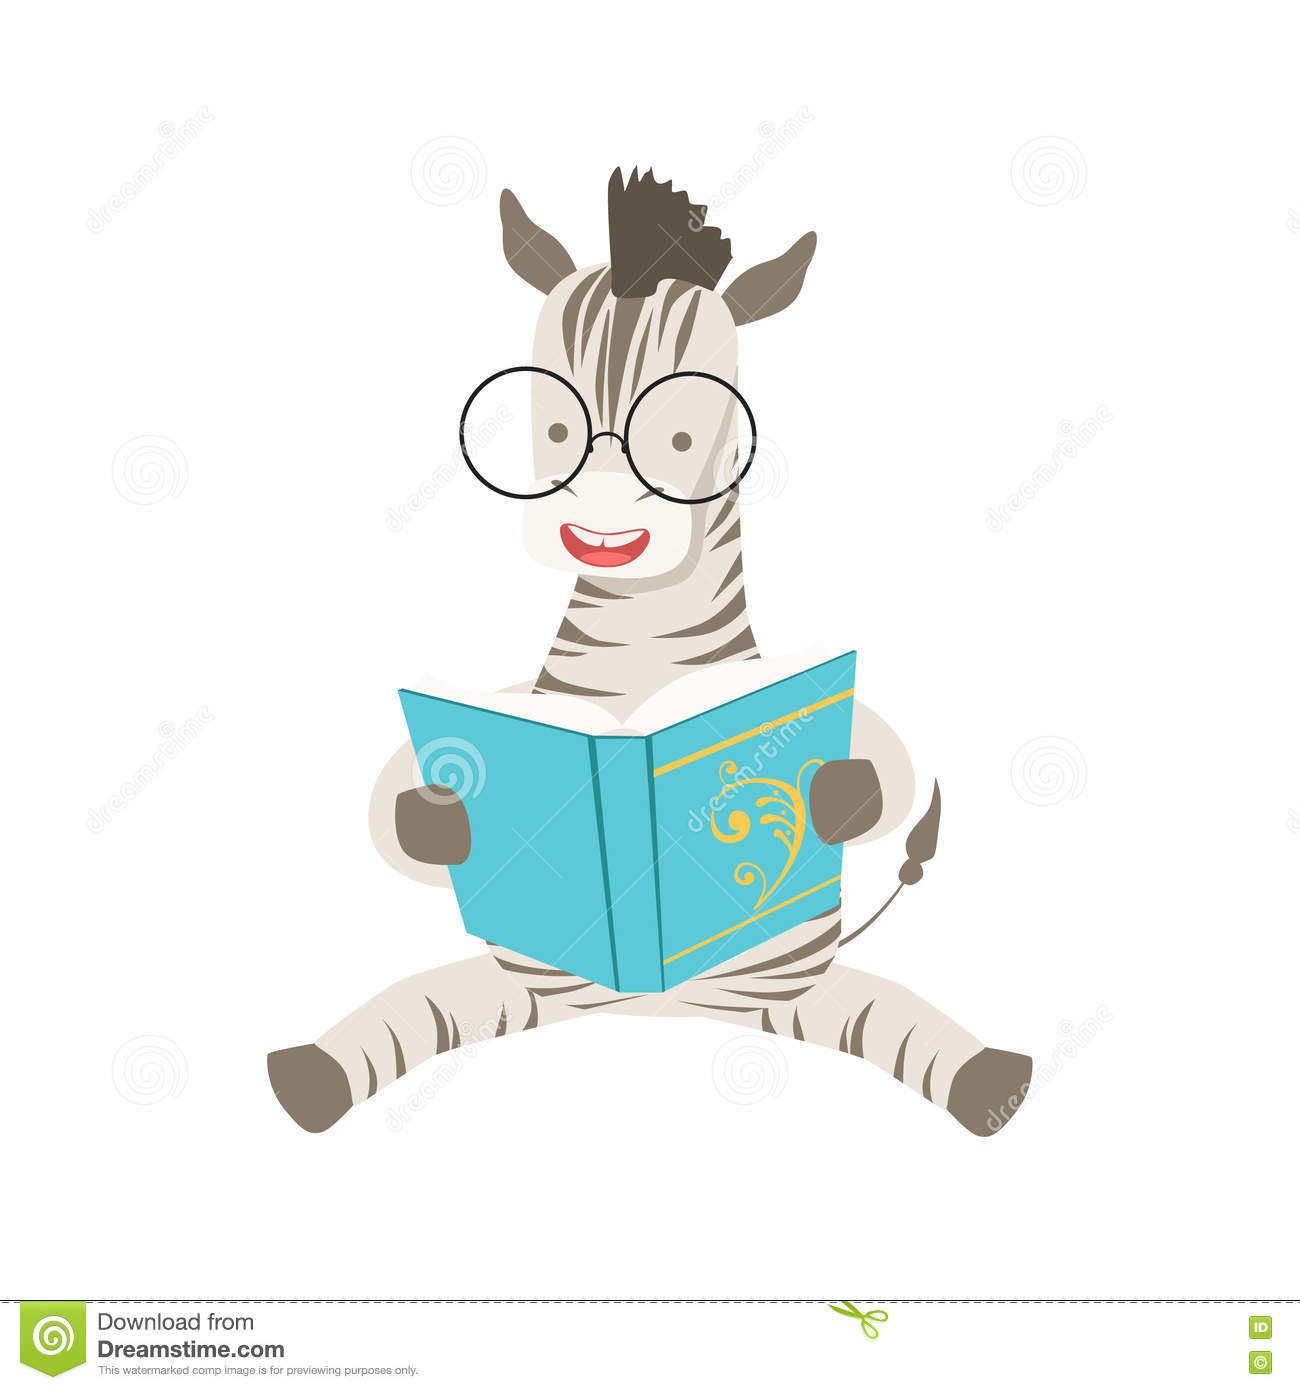 zebra smiling bookworm zoo character wearing glasses and reading a